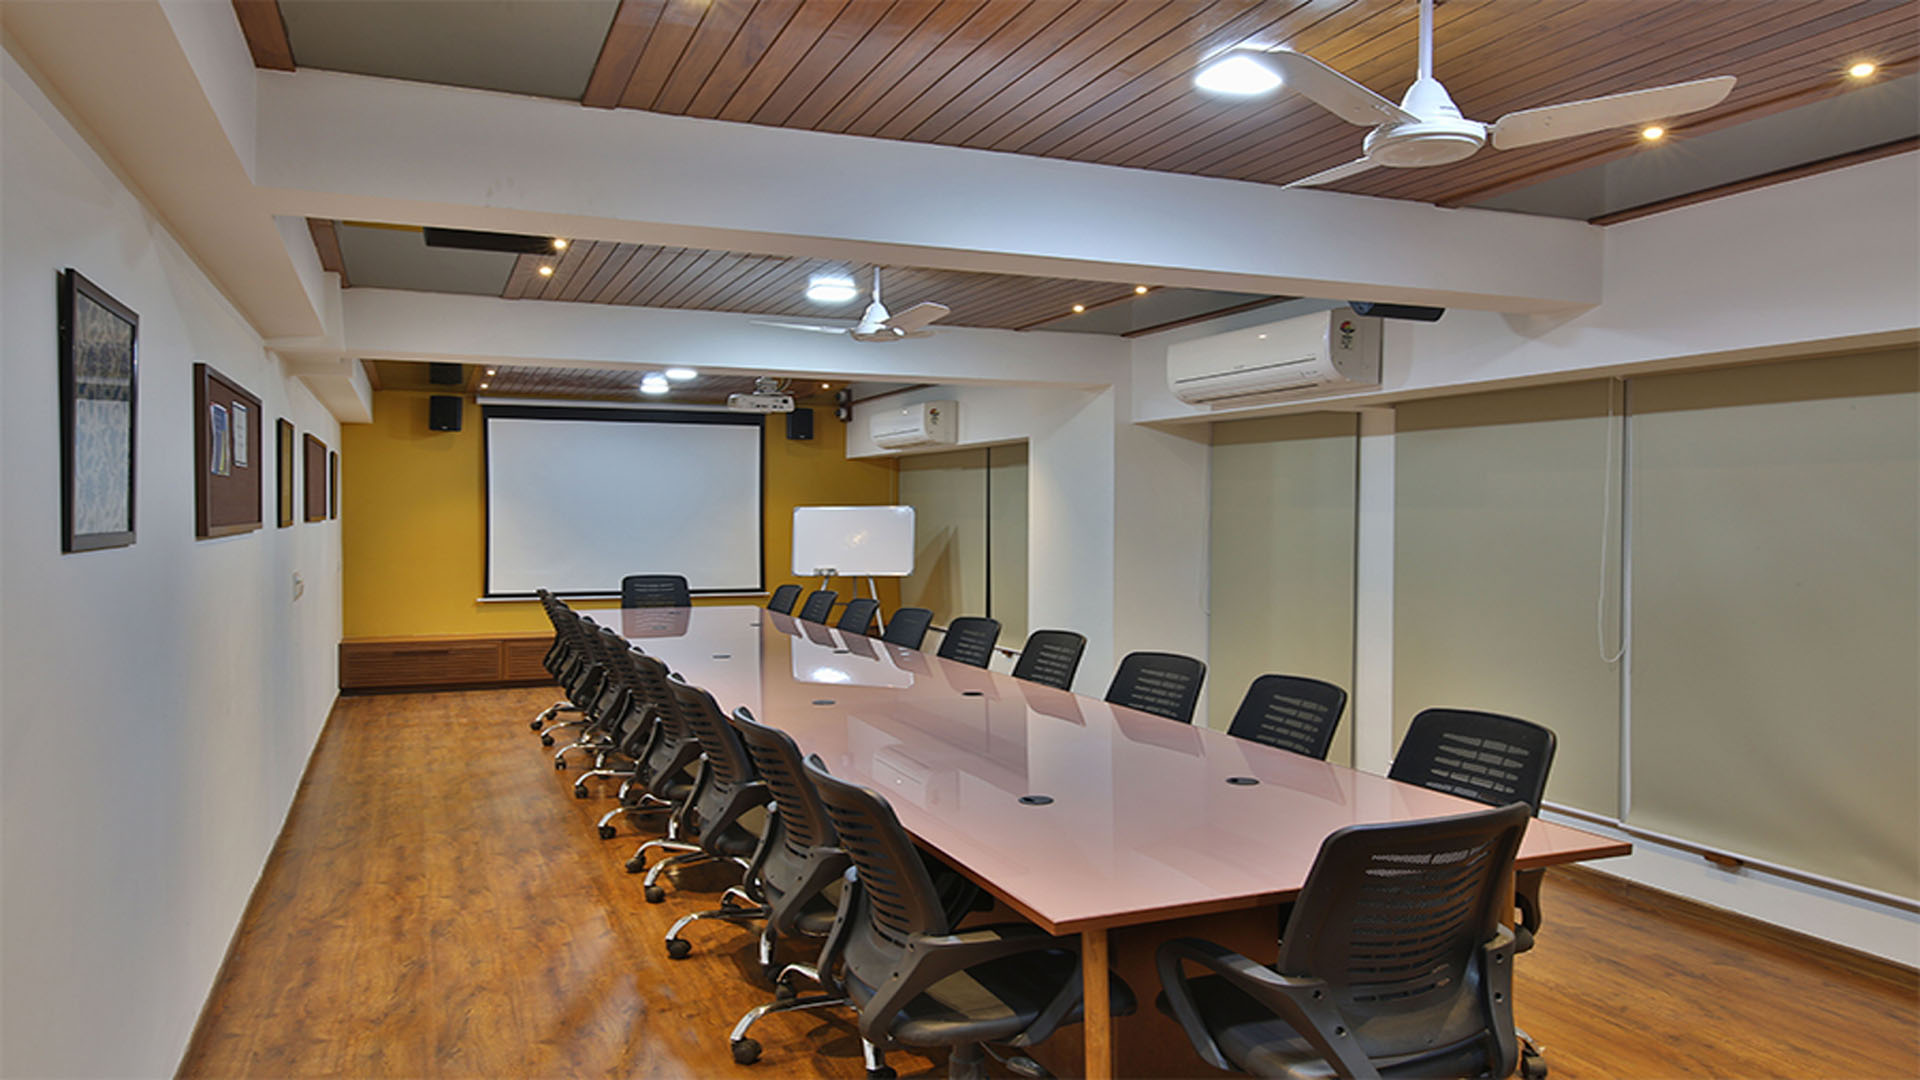 Large Focus Group Room